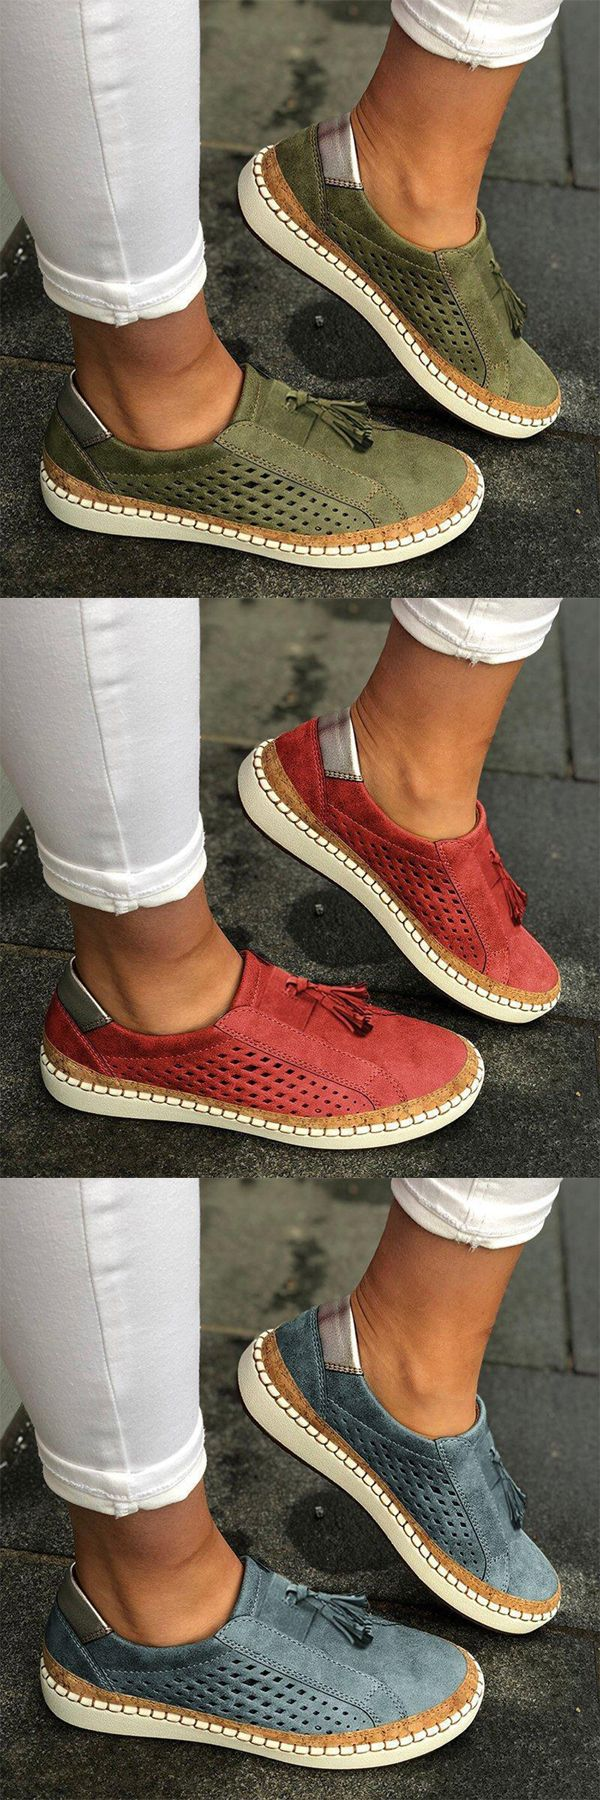 The beautiful shoes!Summer Prime Sale  is part of Sneakers fashion -